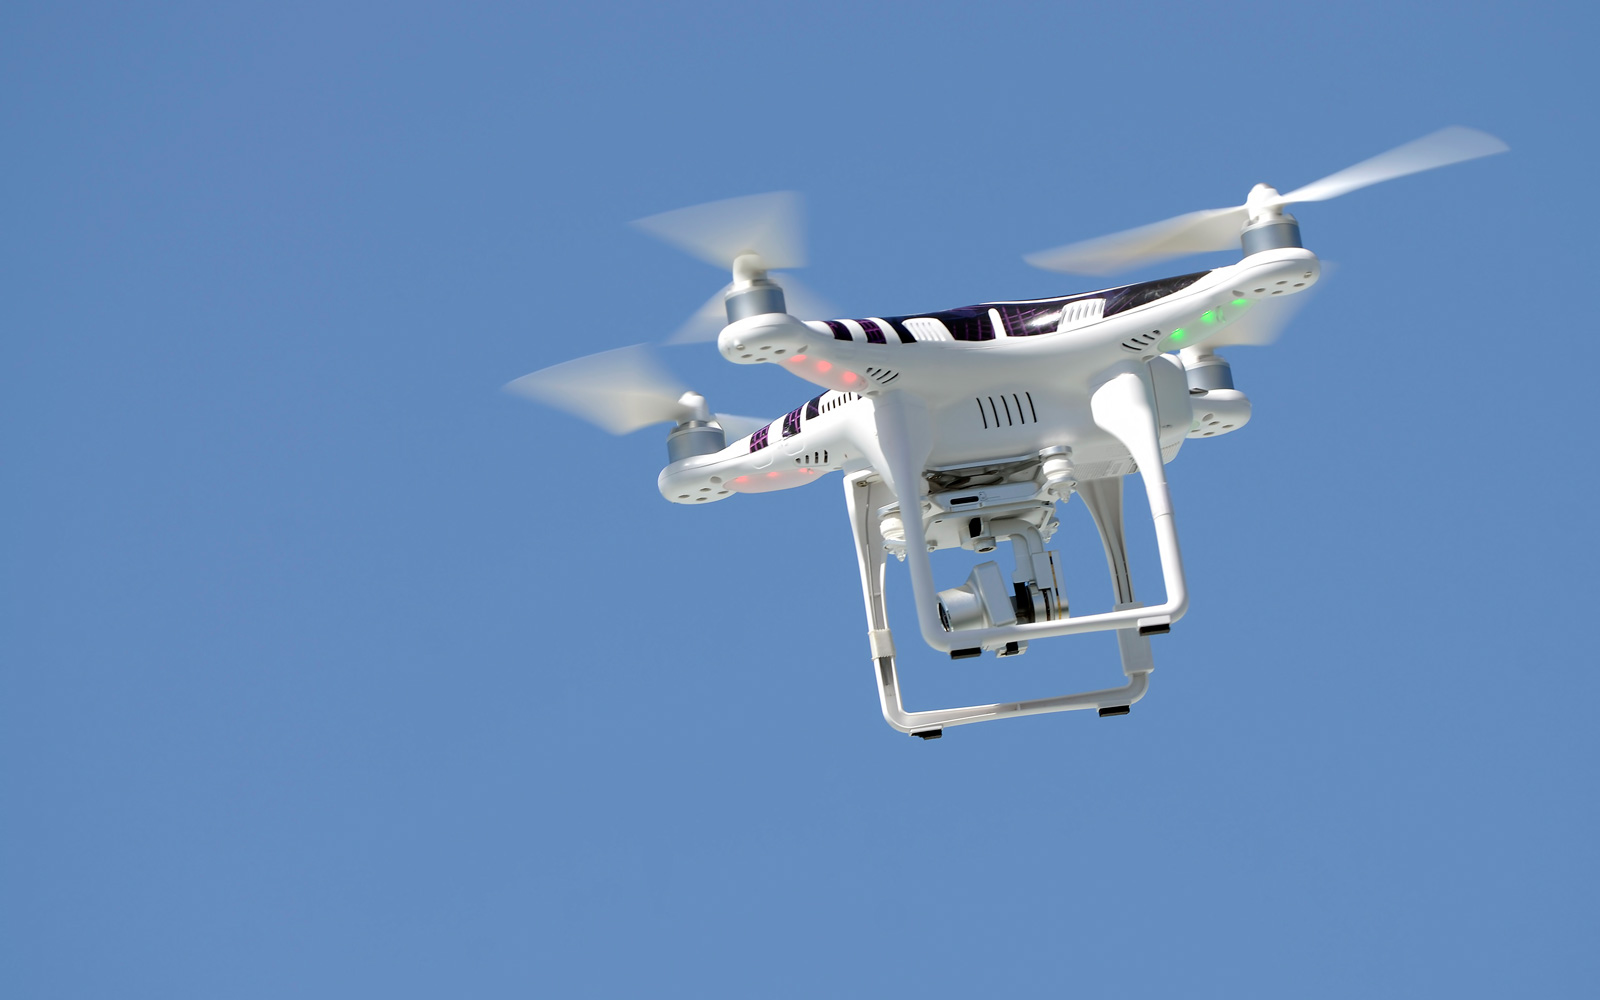 A Lot of People Have Already Crashed Their Brand New Drones This Christmas